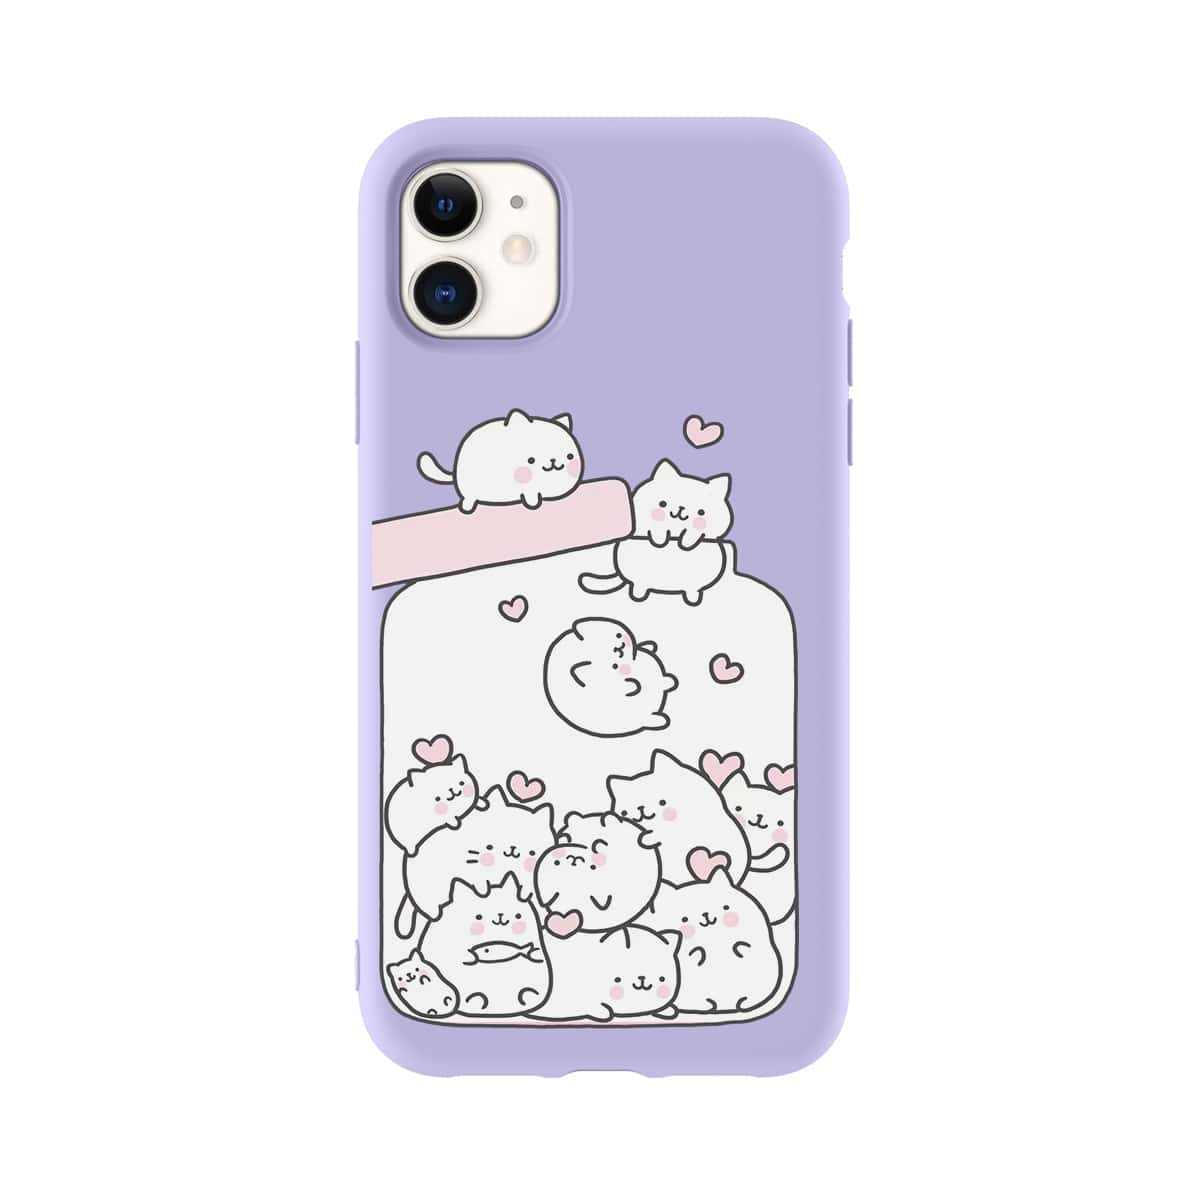 Cat Cartoon Graphic iPhone Case, SHEIN  - buy with discount